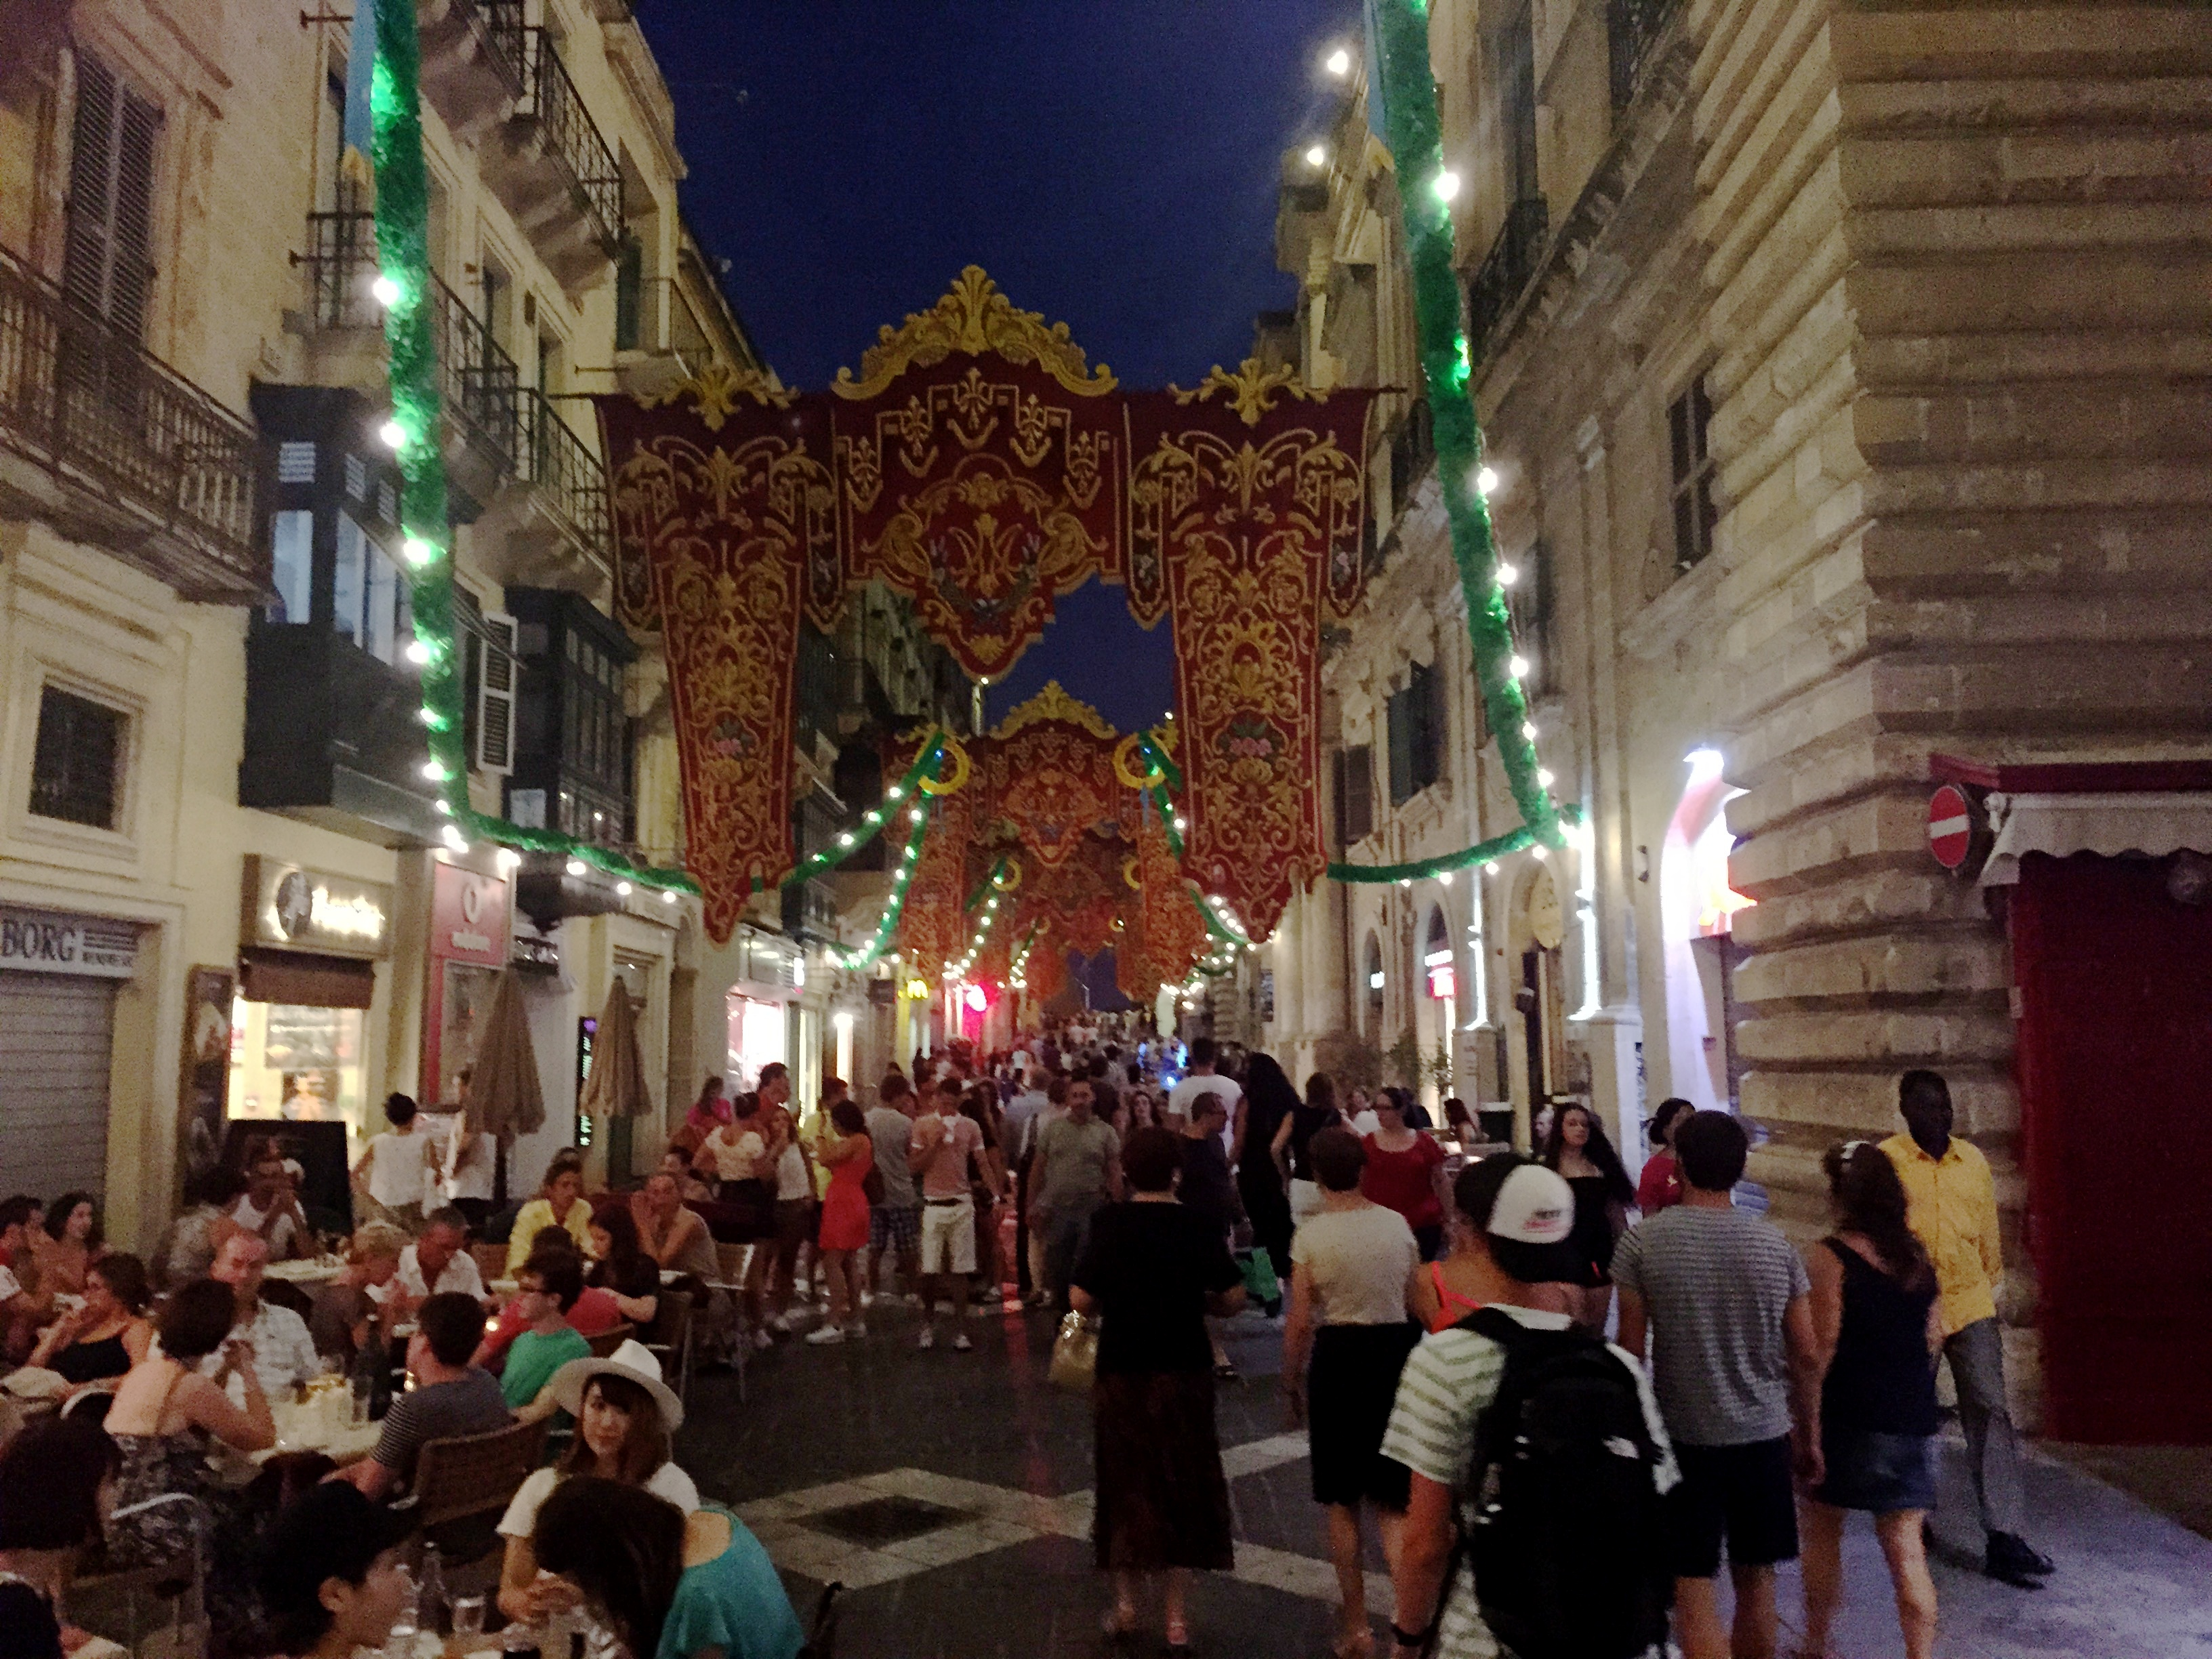 July feast in Valetta, Malta